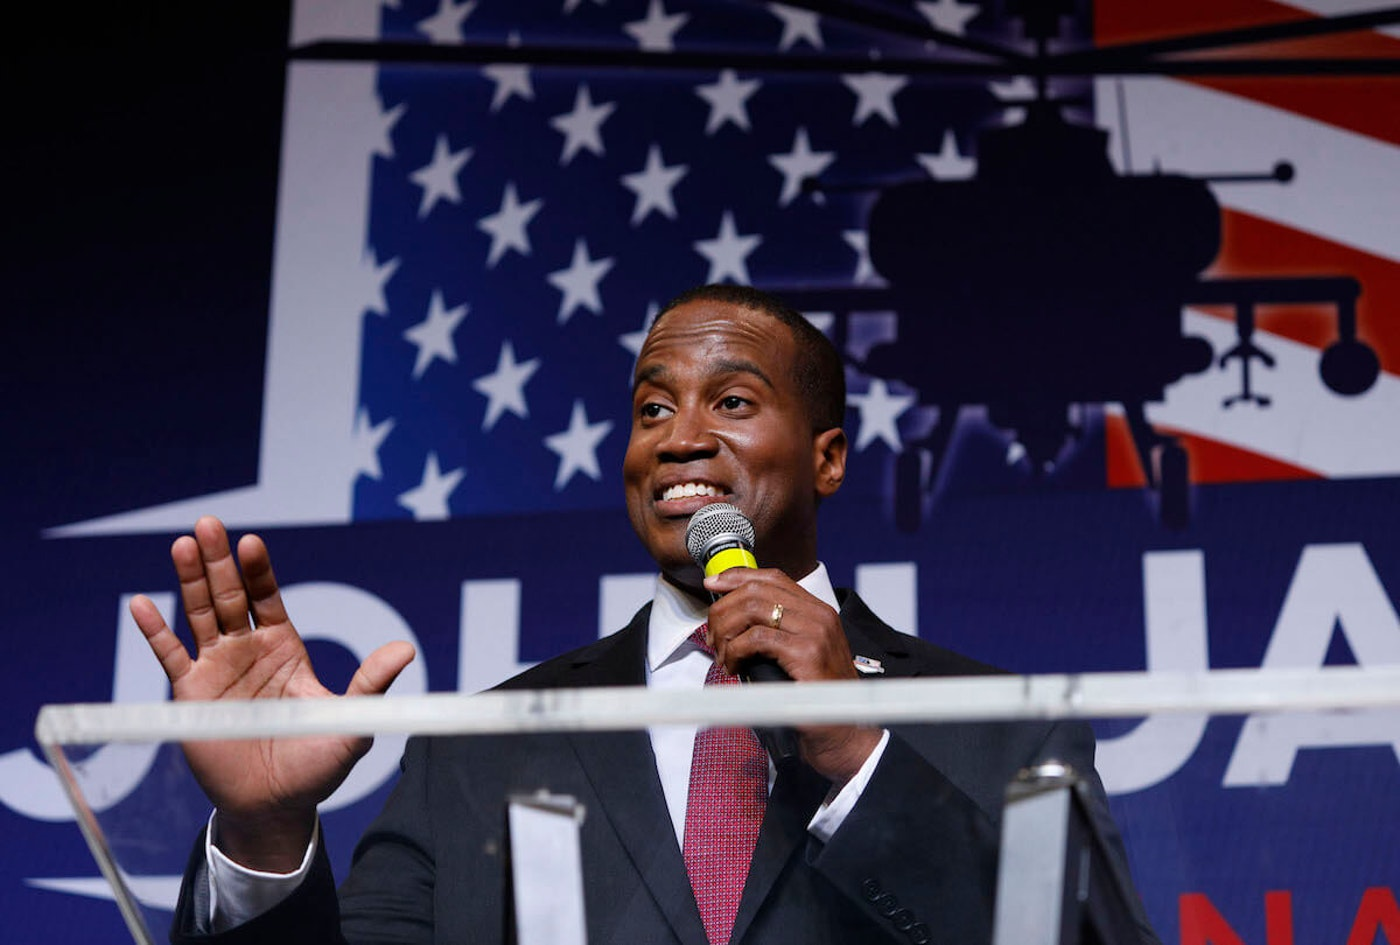 John James speaking at an election night event in August 2018. (Photo by Bill Pugliano/Getty Images)